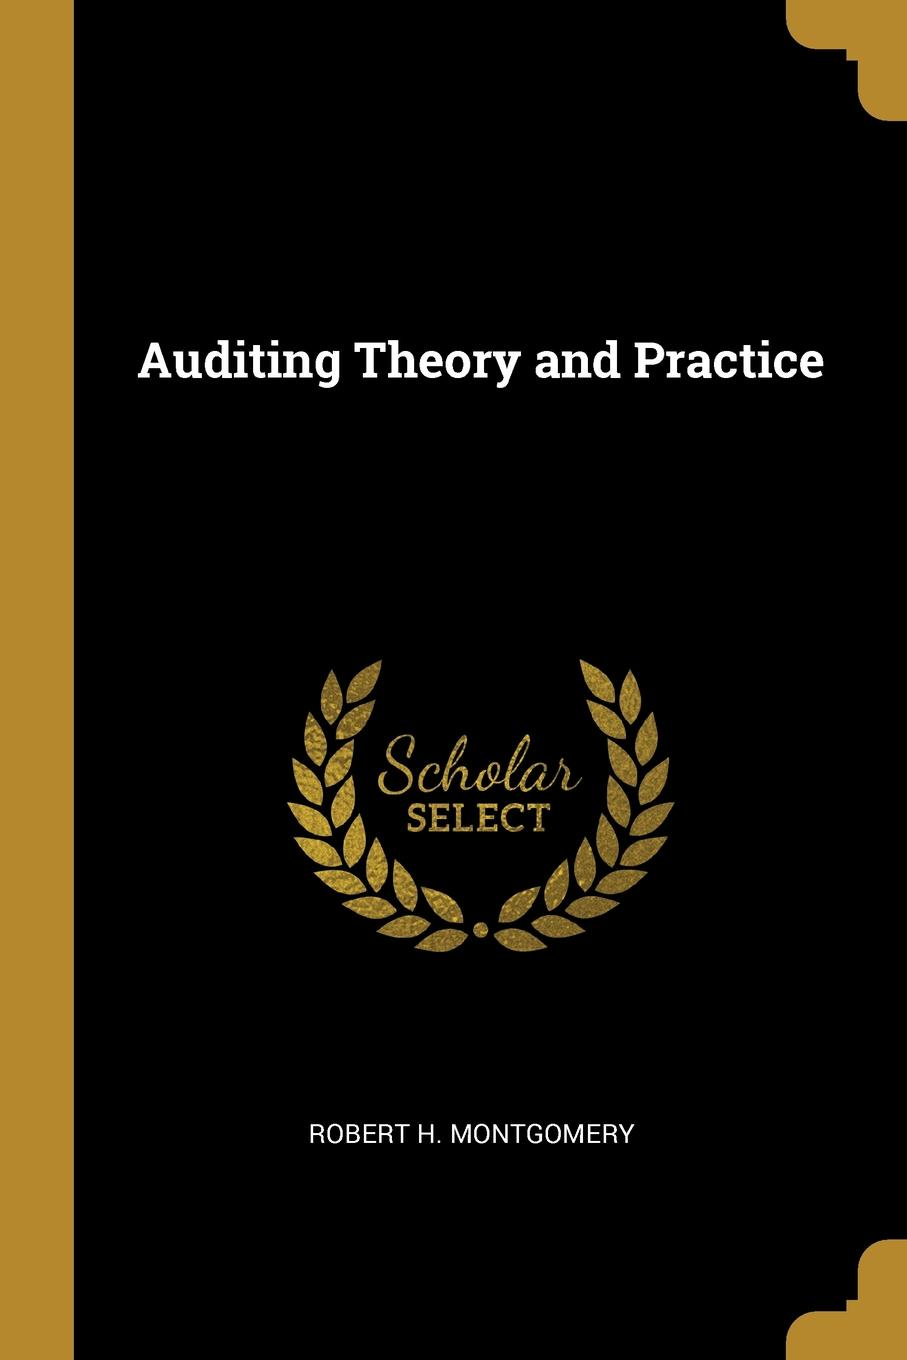 Robert H. Montgomery Auditing Theory and Practice